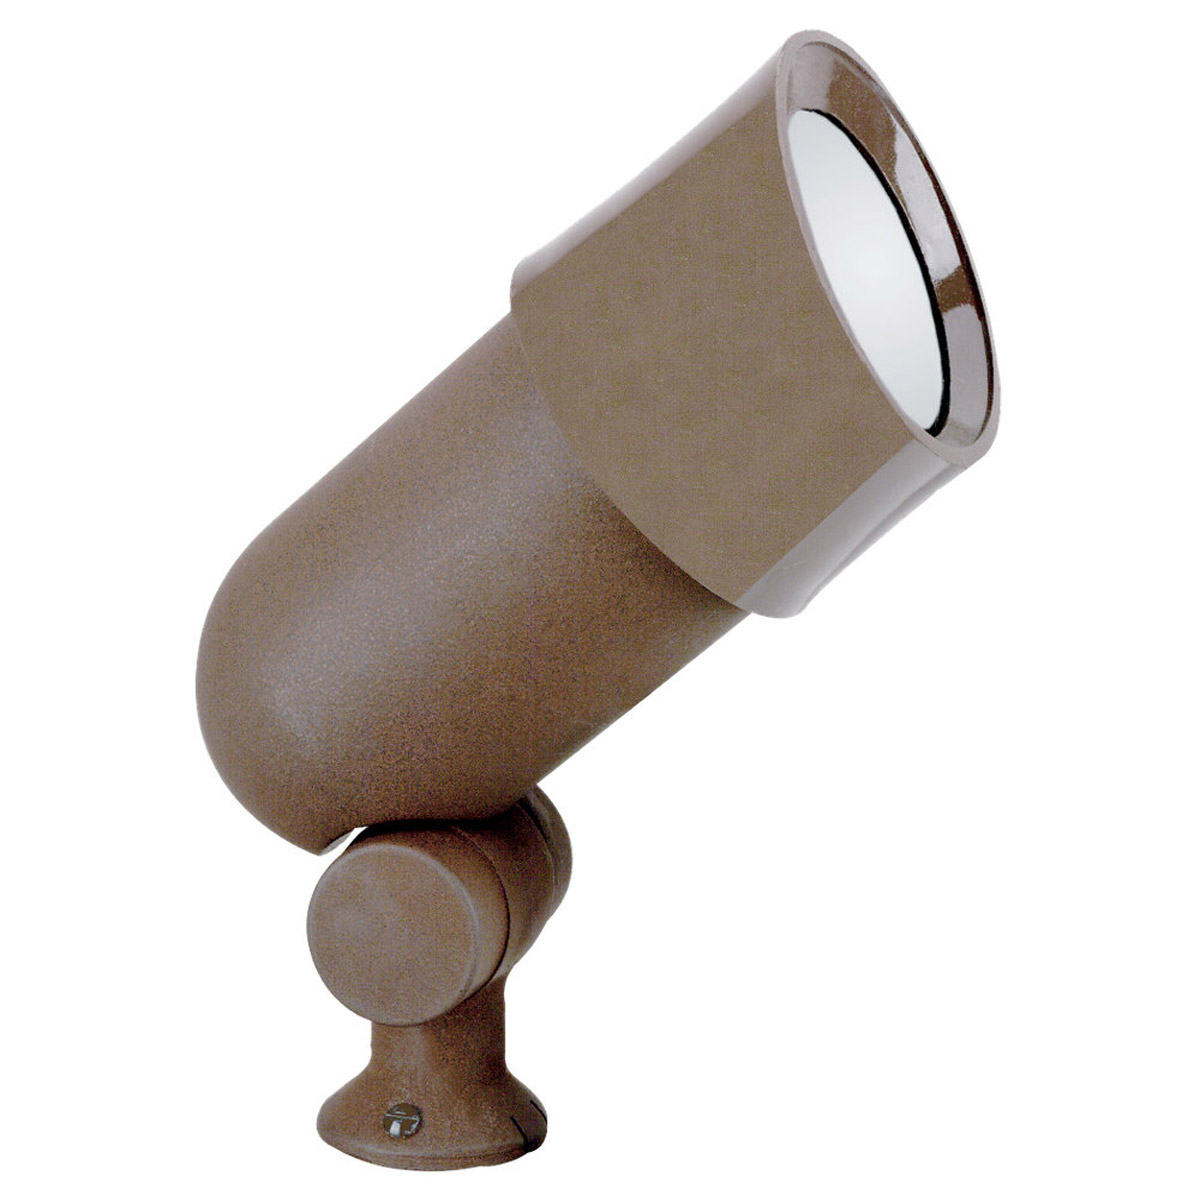 Sea Gull Lighting Landscape Lighting Landscape Lighting System Spot Light 9323-40